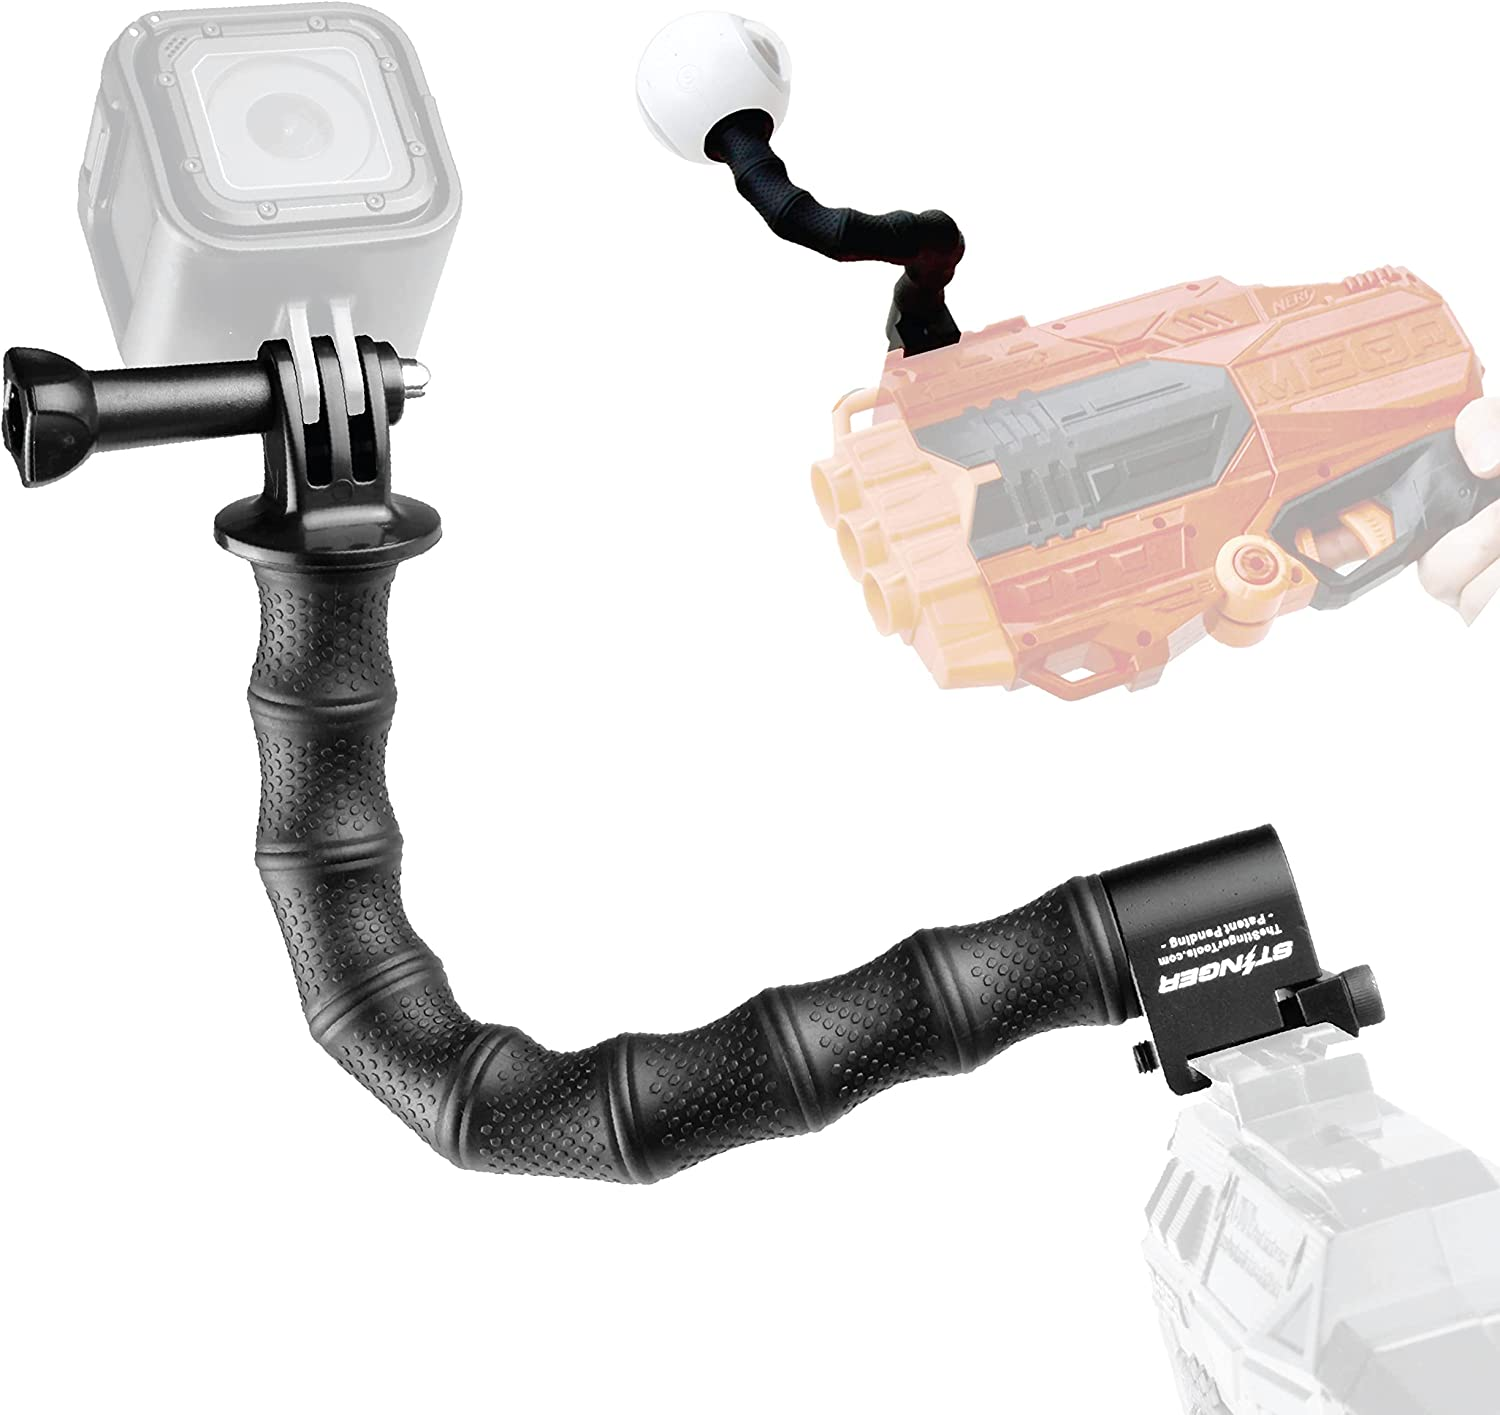 Stinger Python Action Camera Mount Blaster for Rival Sale special price Max 63% OFF Nerf Elise